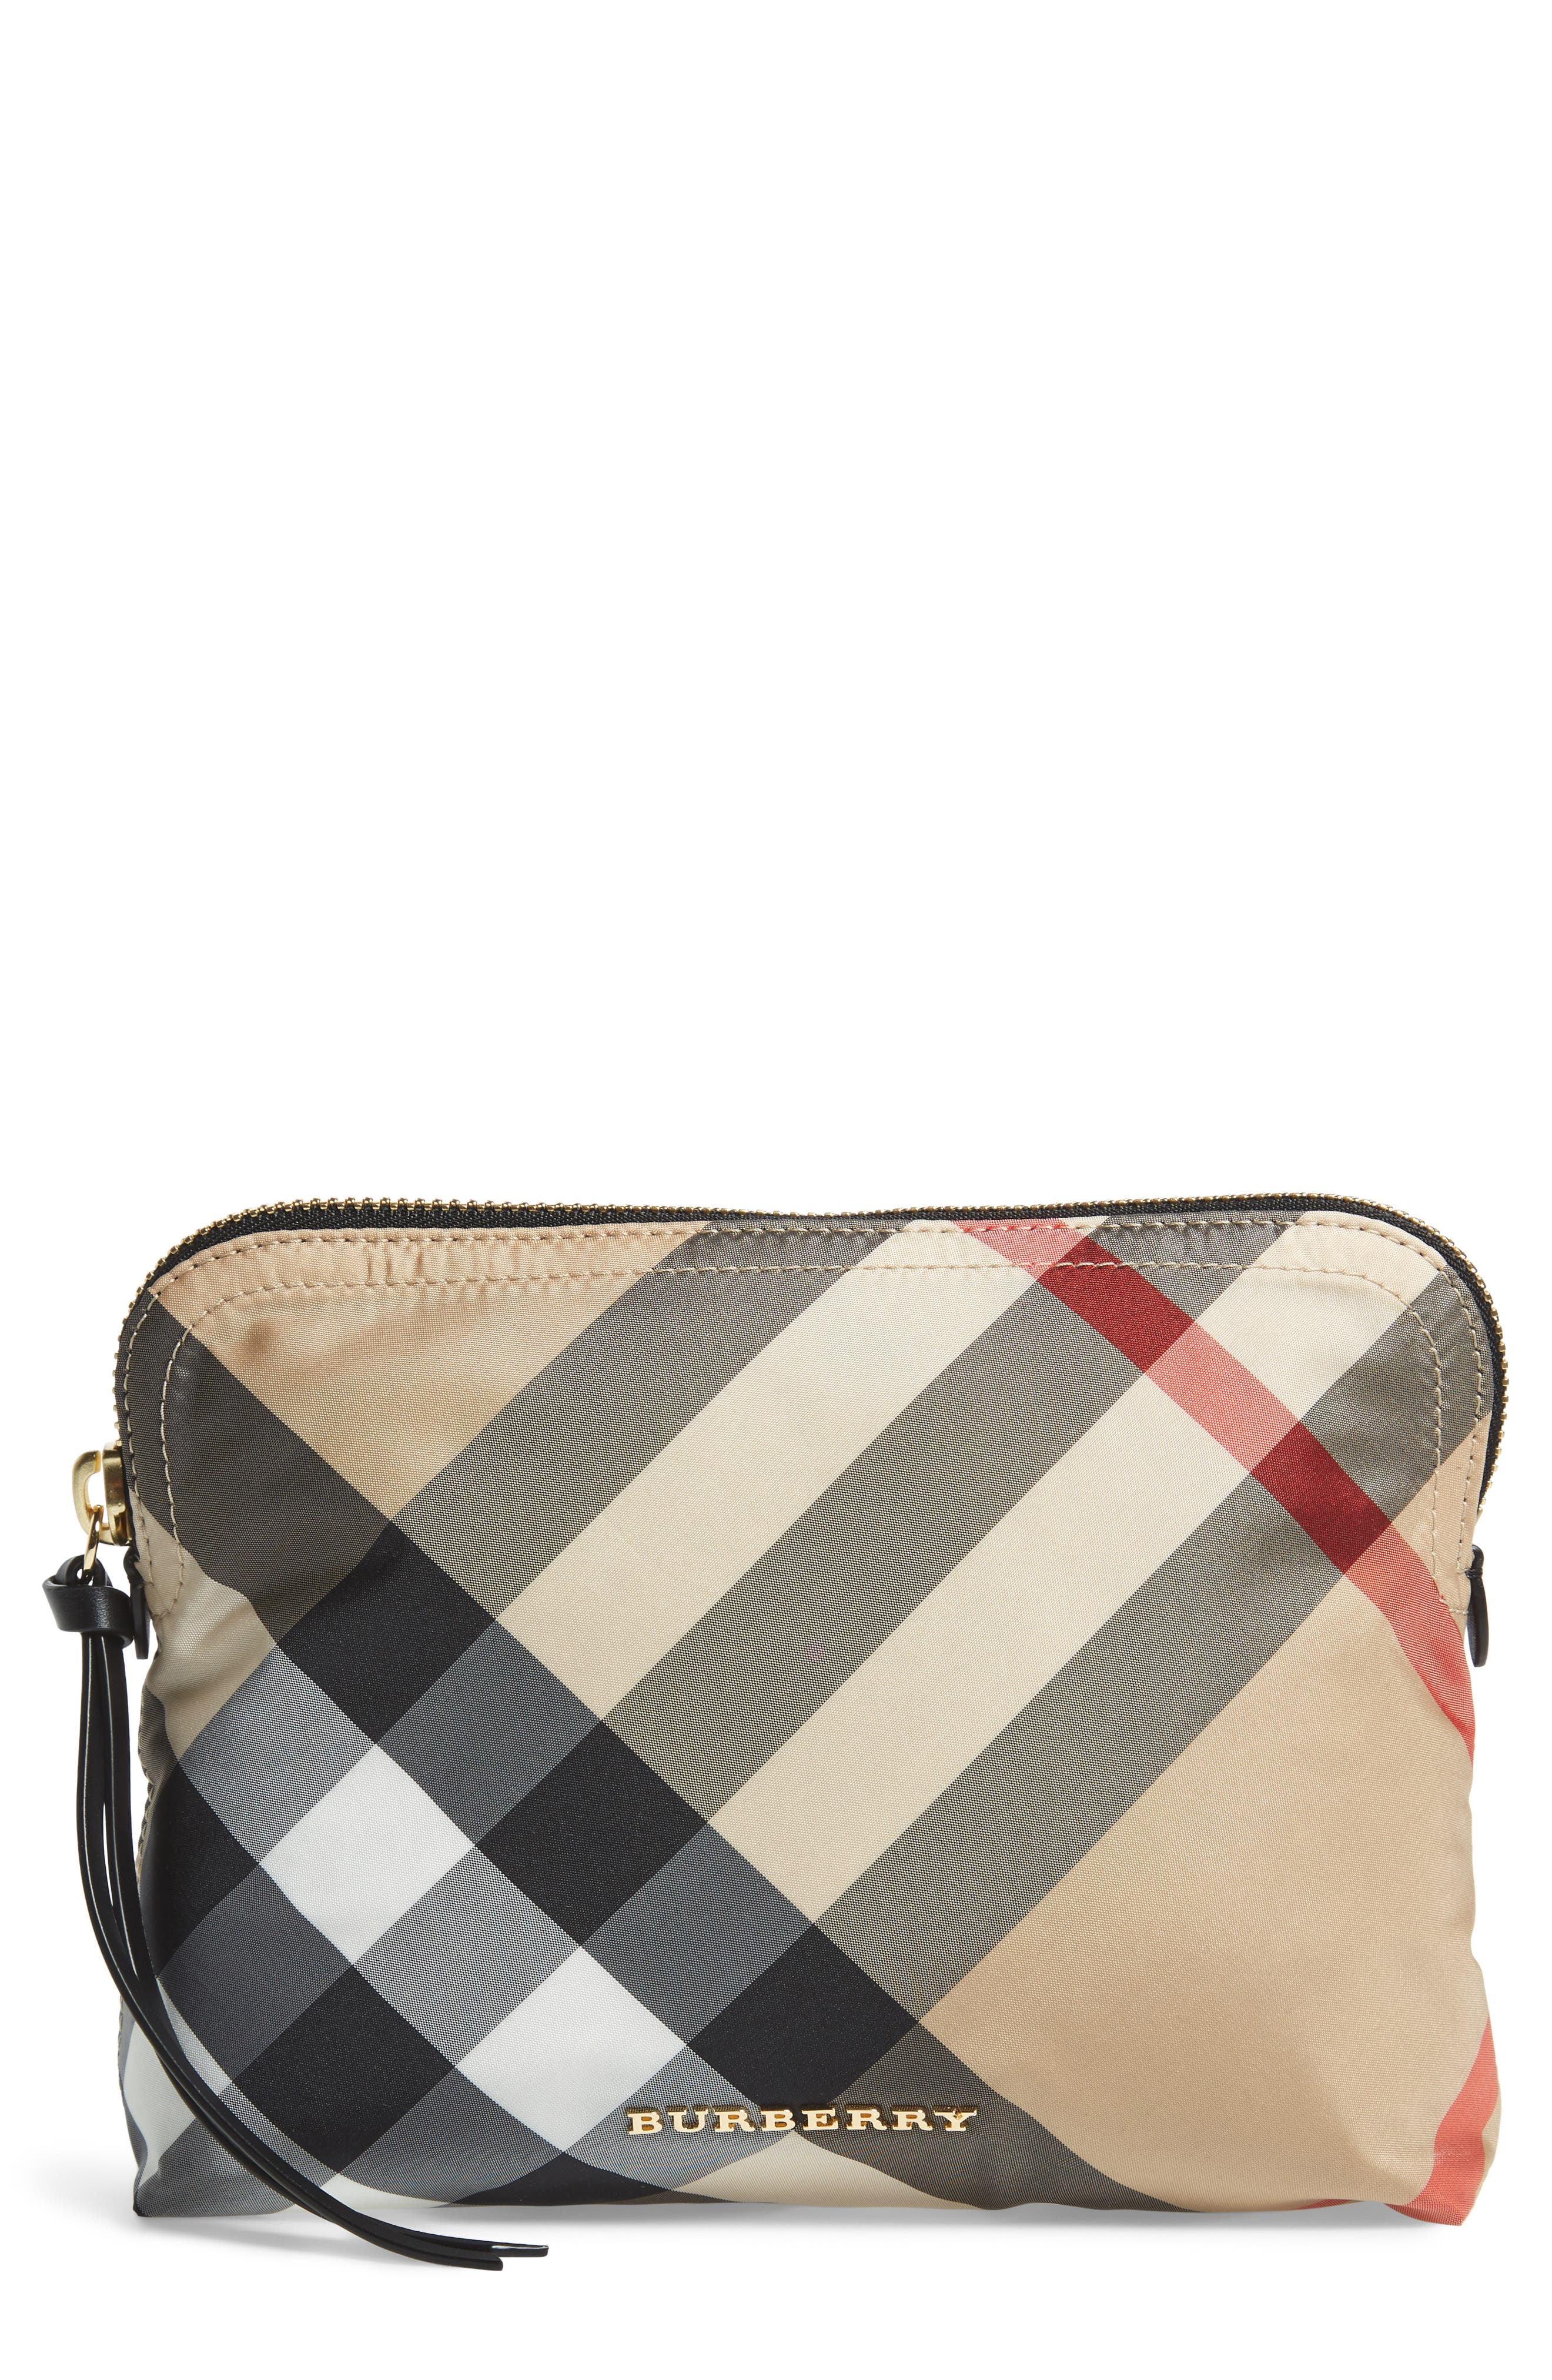 Burberry Large Check Zip Pouch